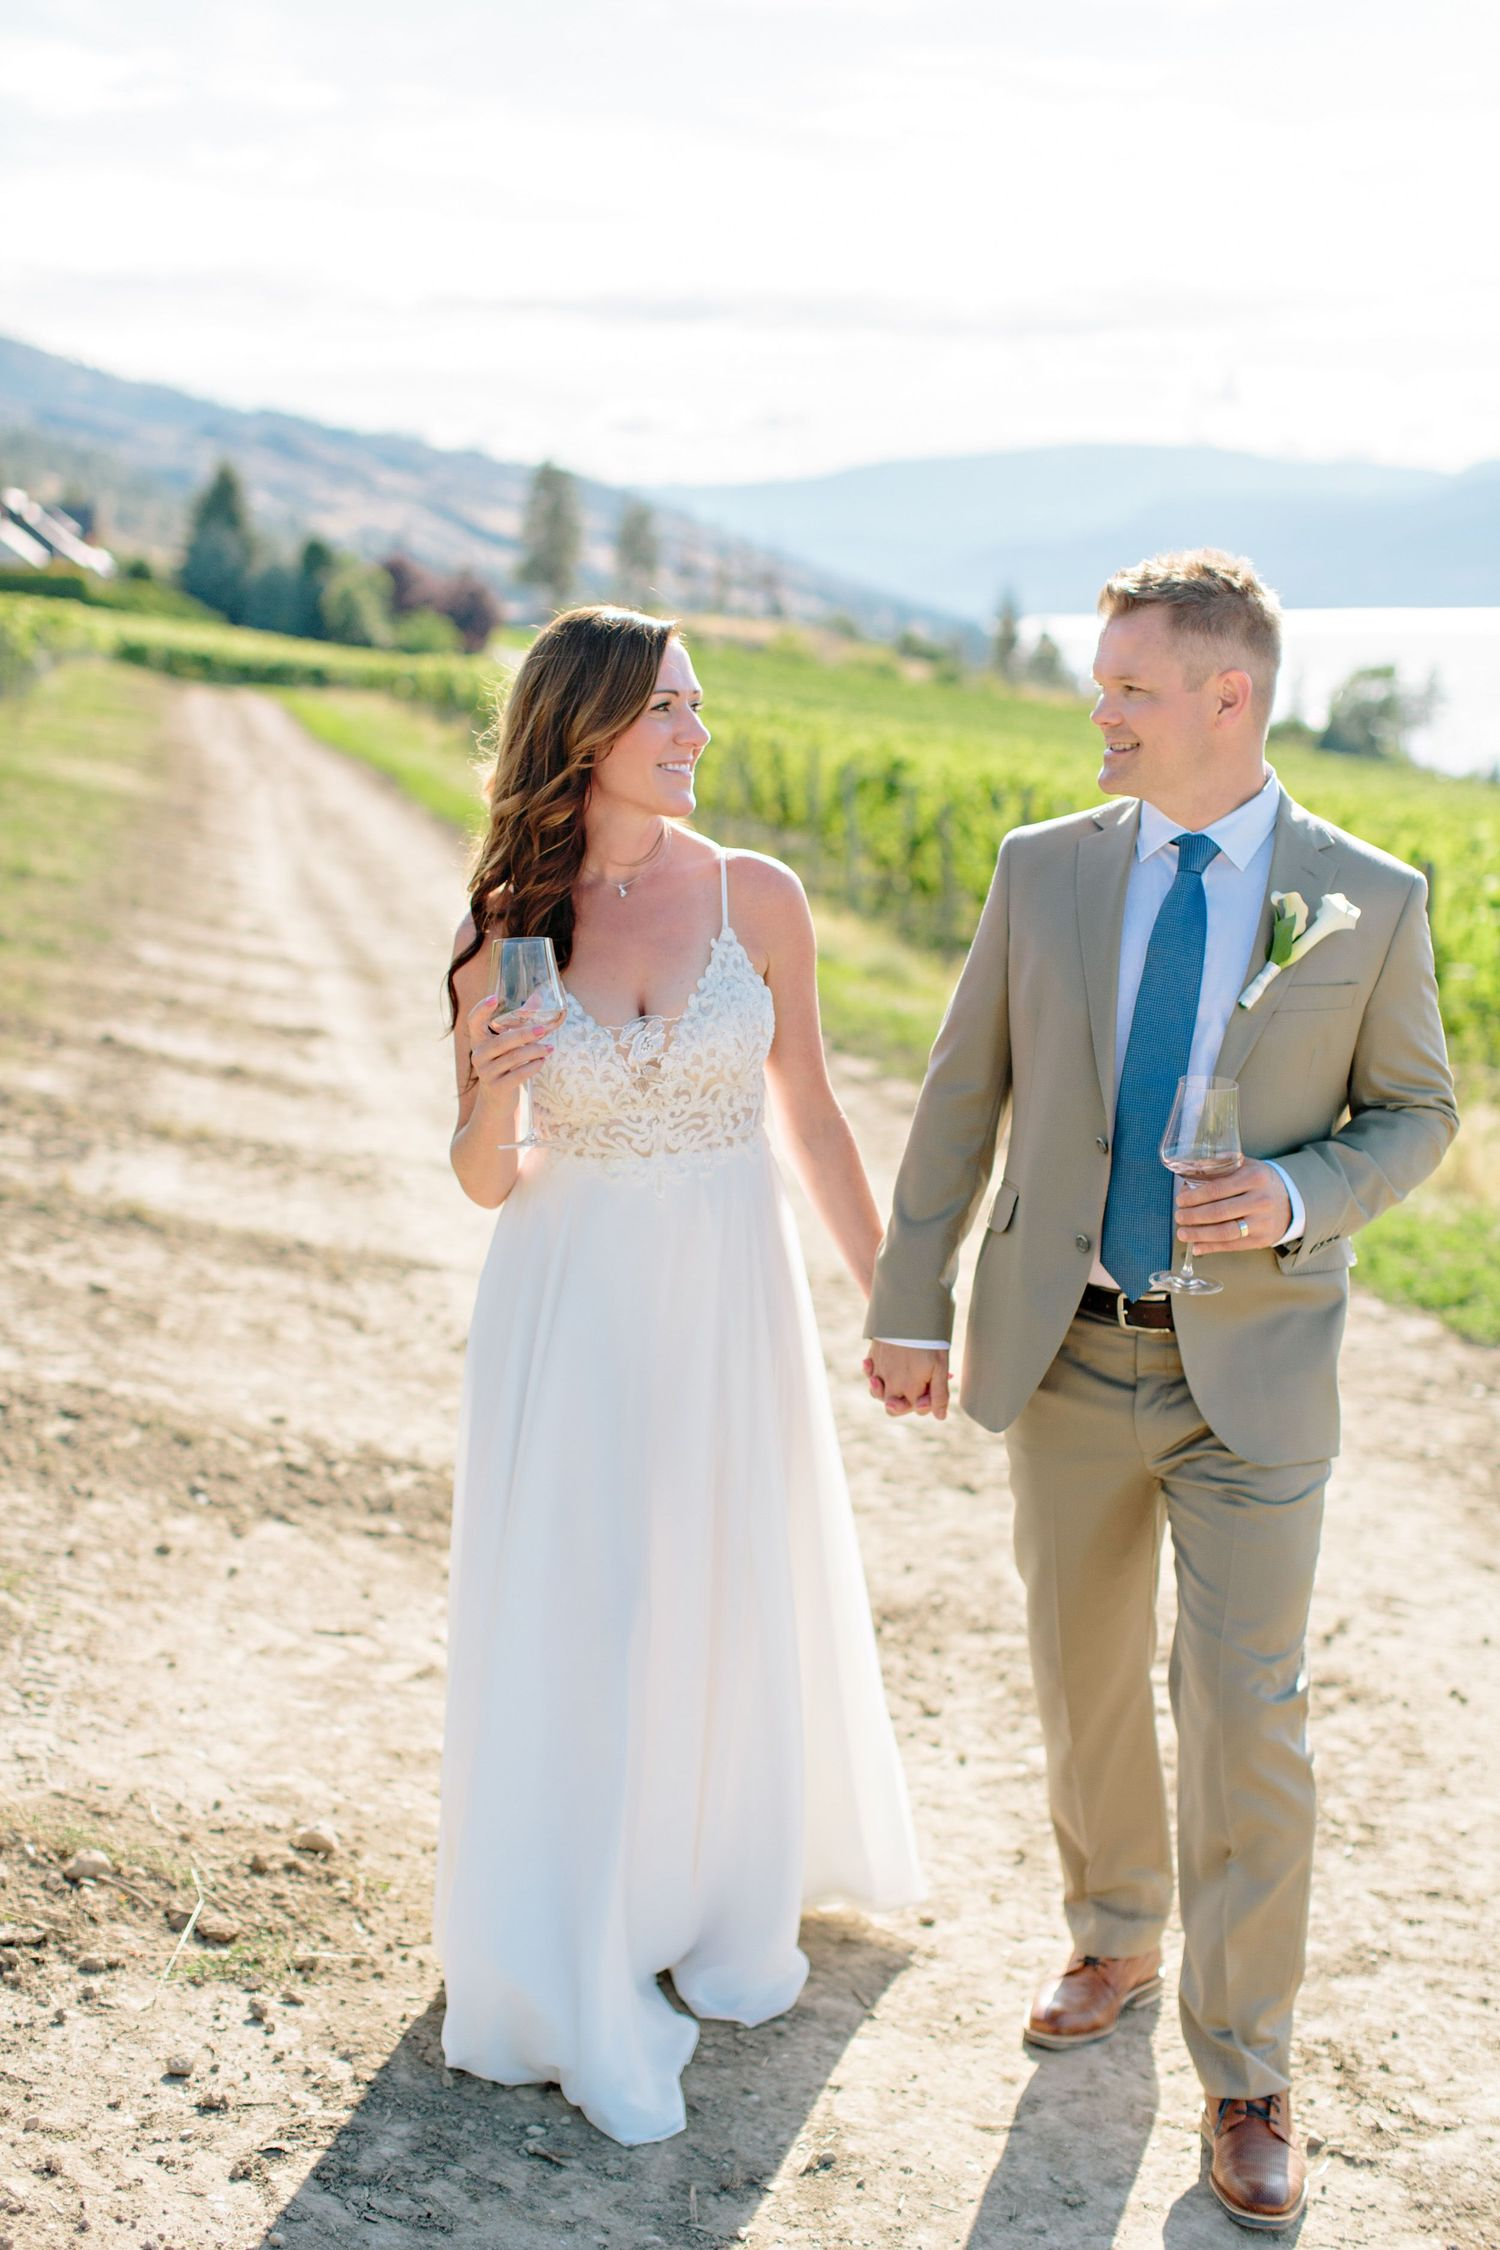 holding hands walking in vineyard